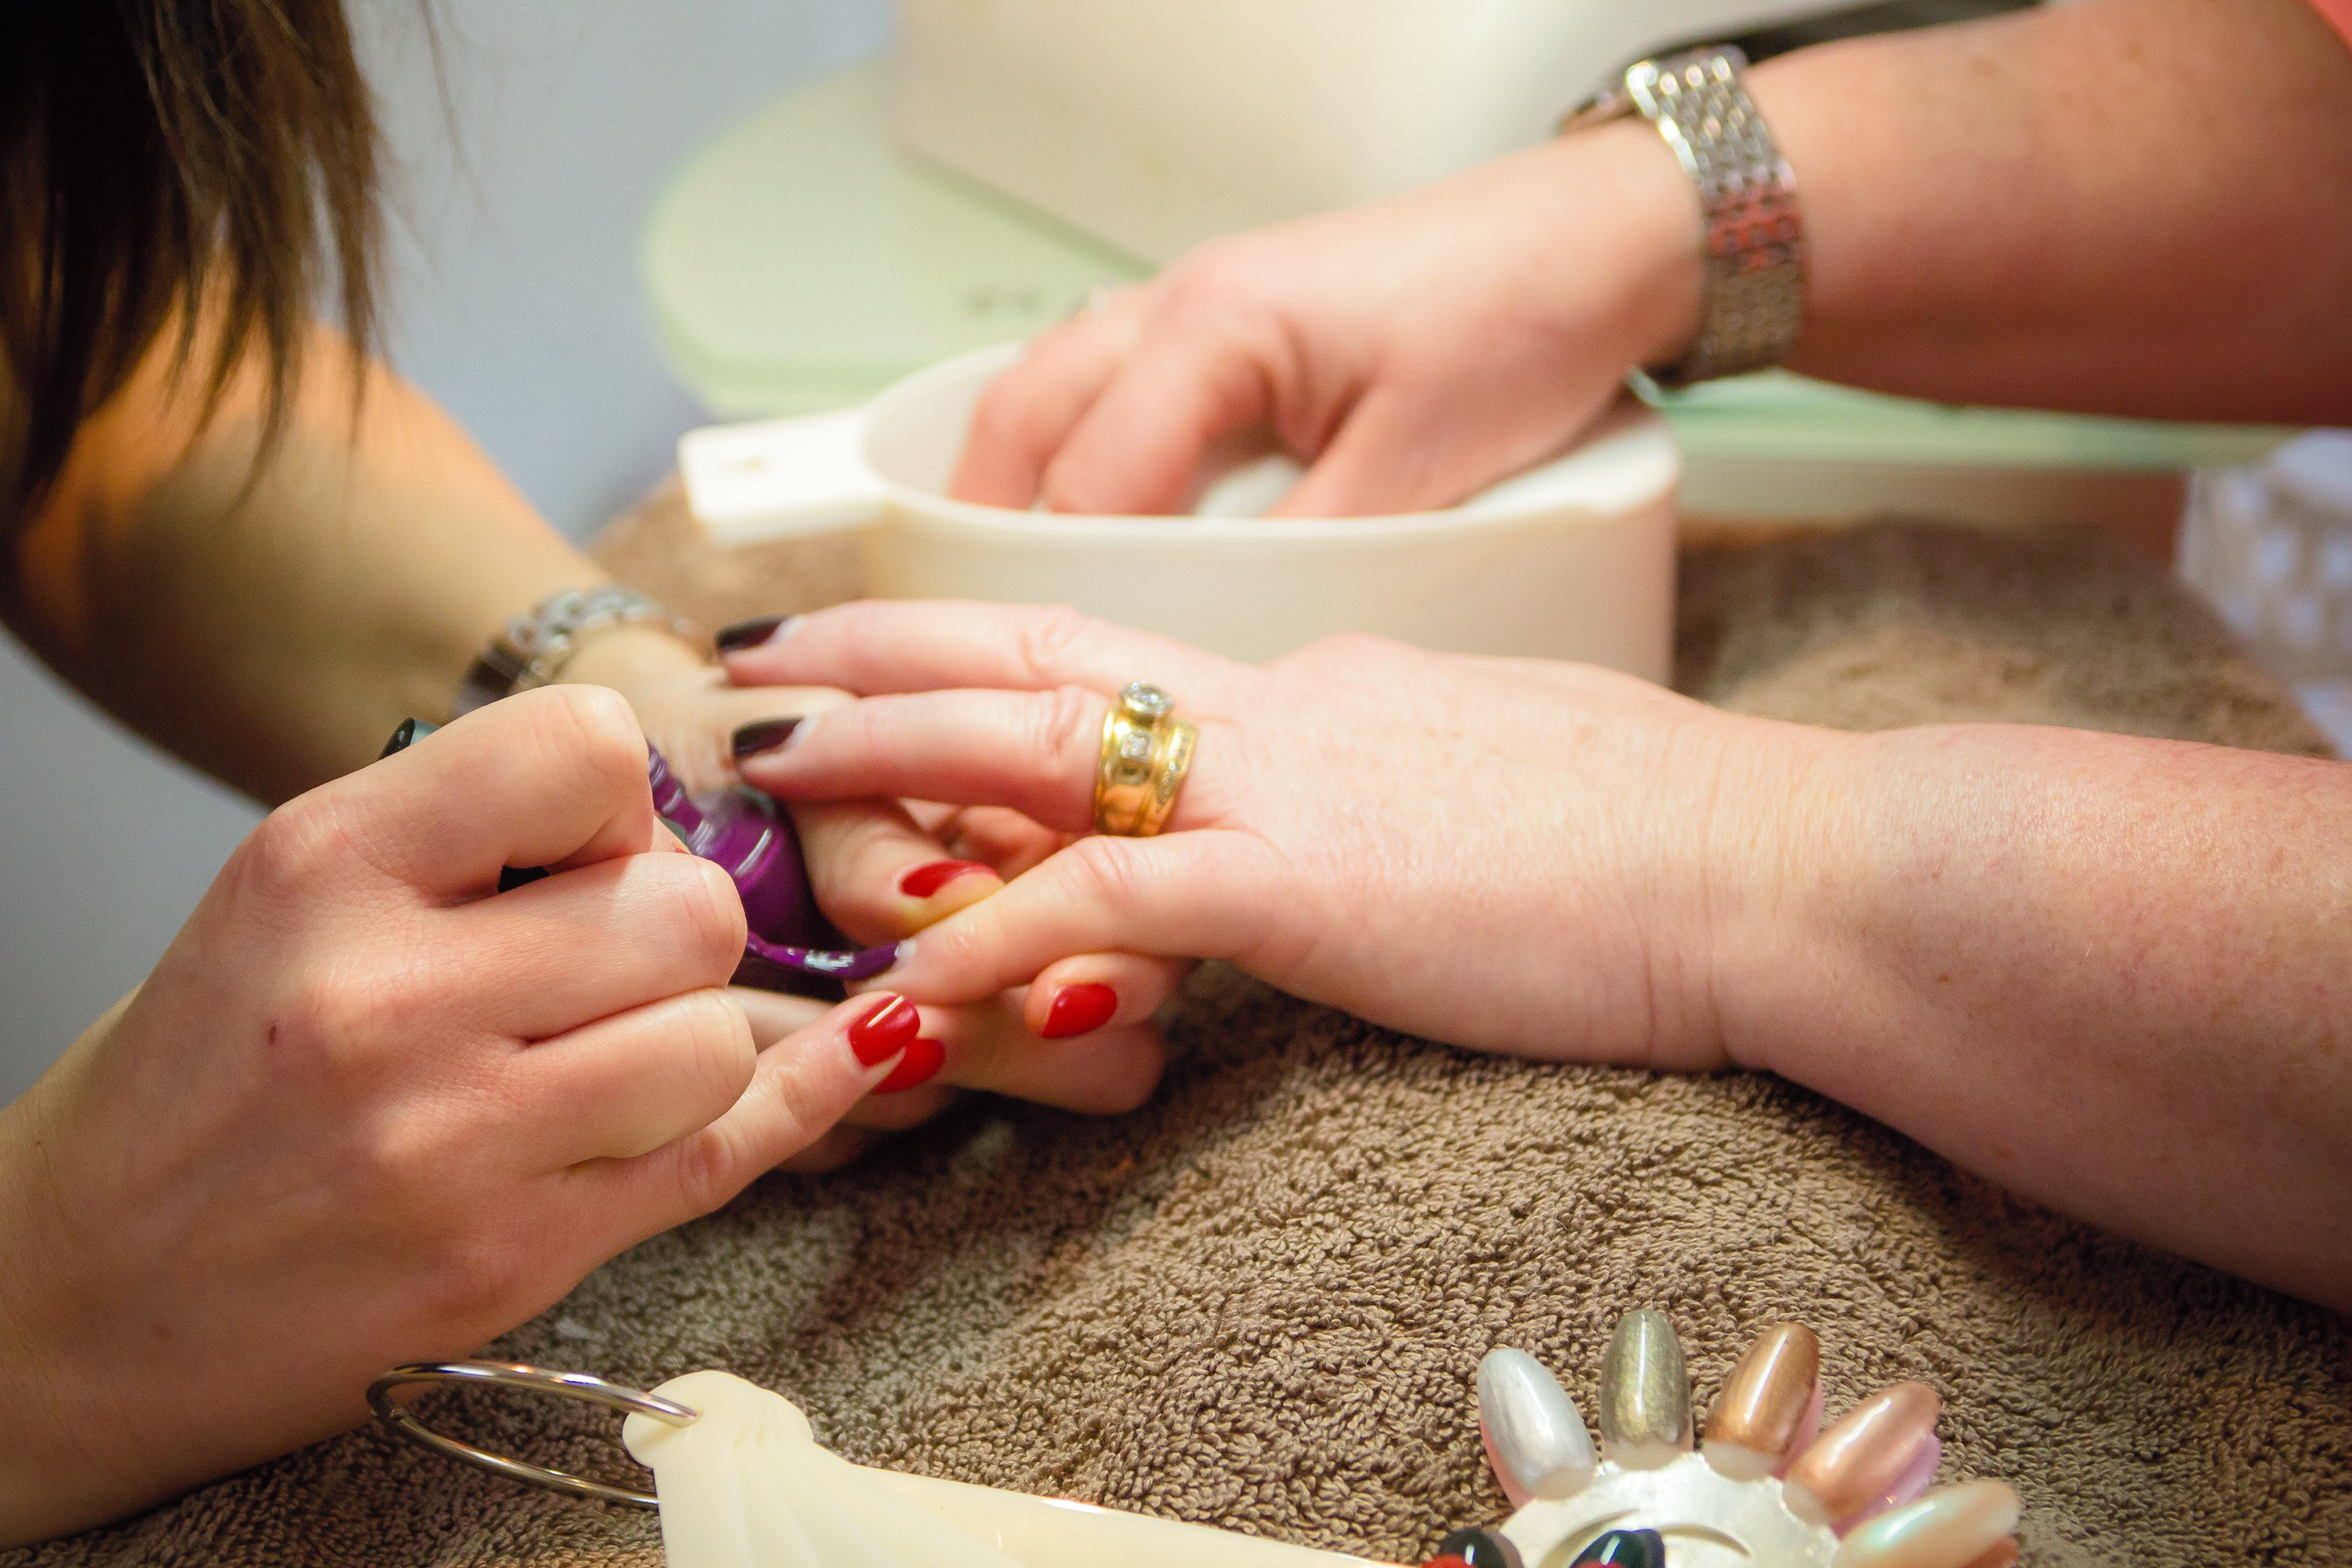 Close up of two women's hands, one applying a manicure to the other